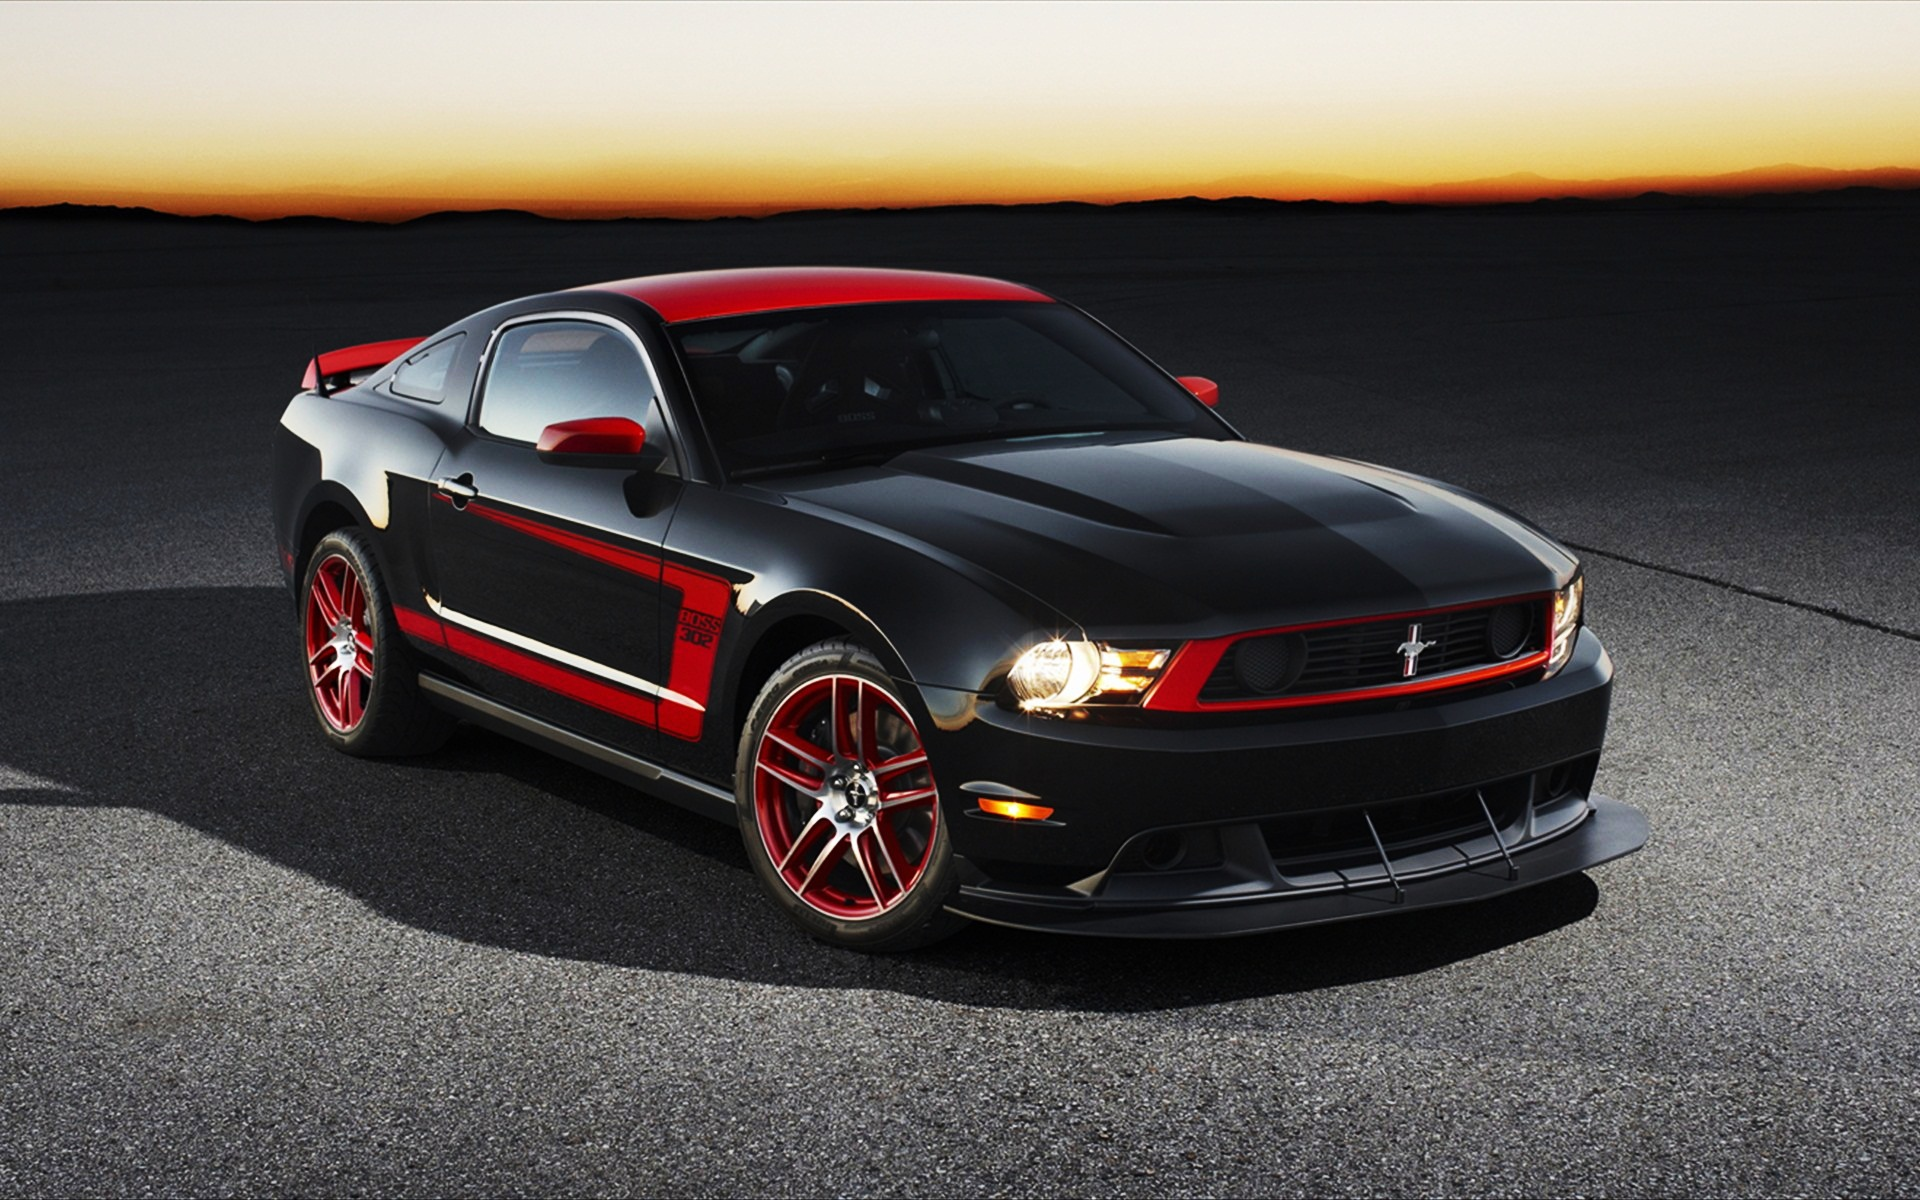 2012 Ford Mustang Boss Desktop Backgrounds Free